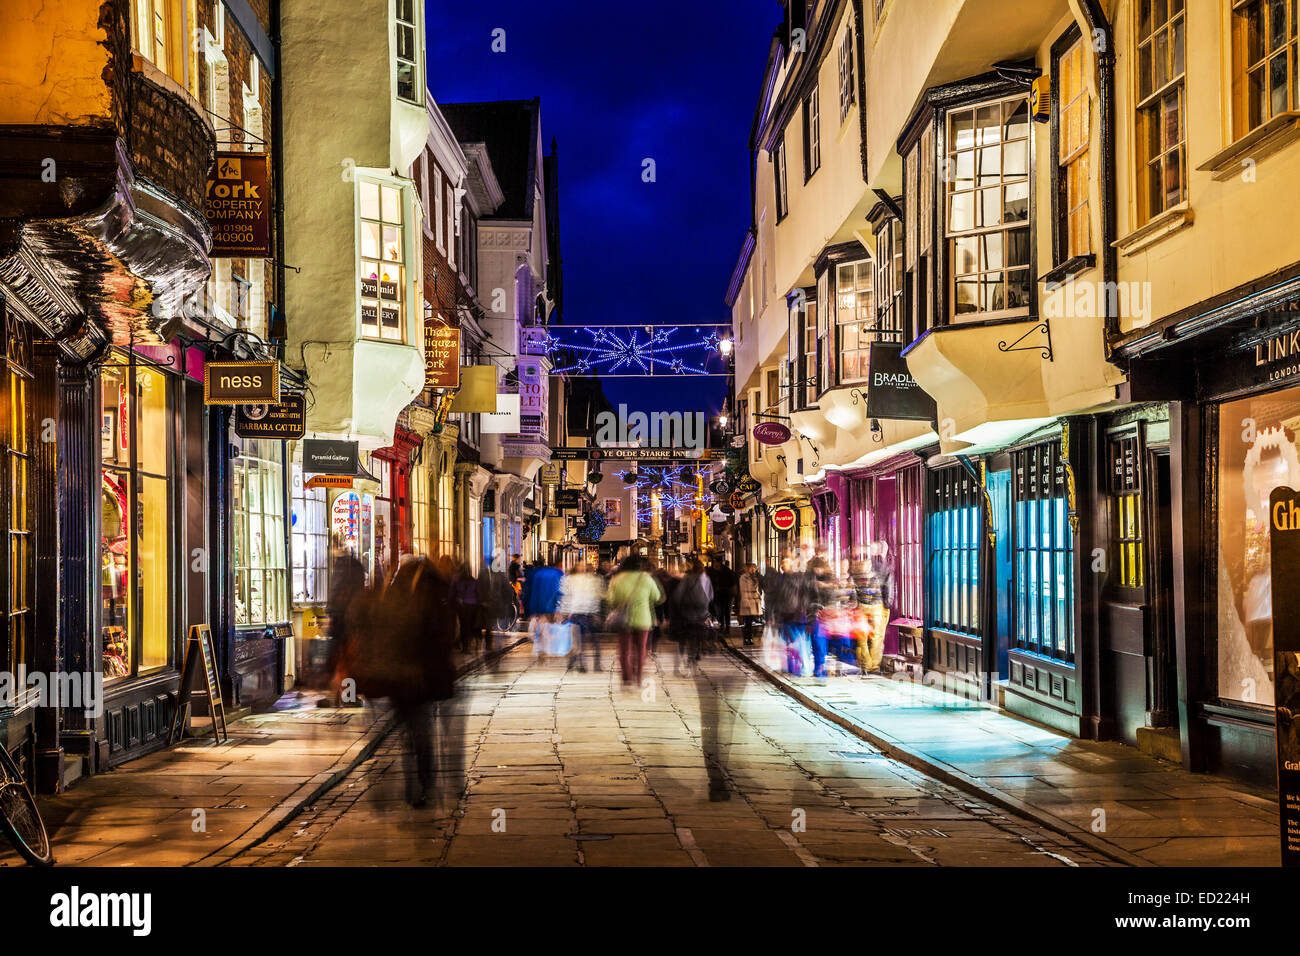 Christmas shoppers hurrying along the historic street of Stonegate in York at twilight. - Stock Image